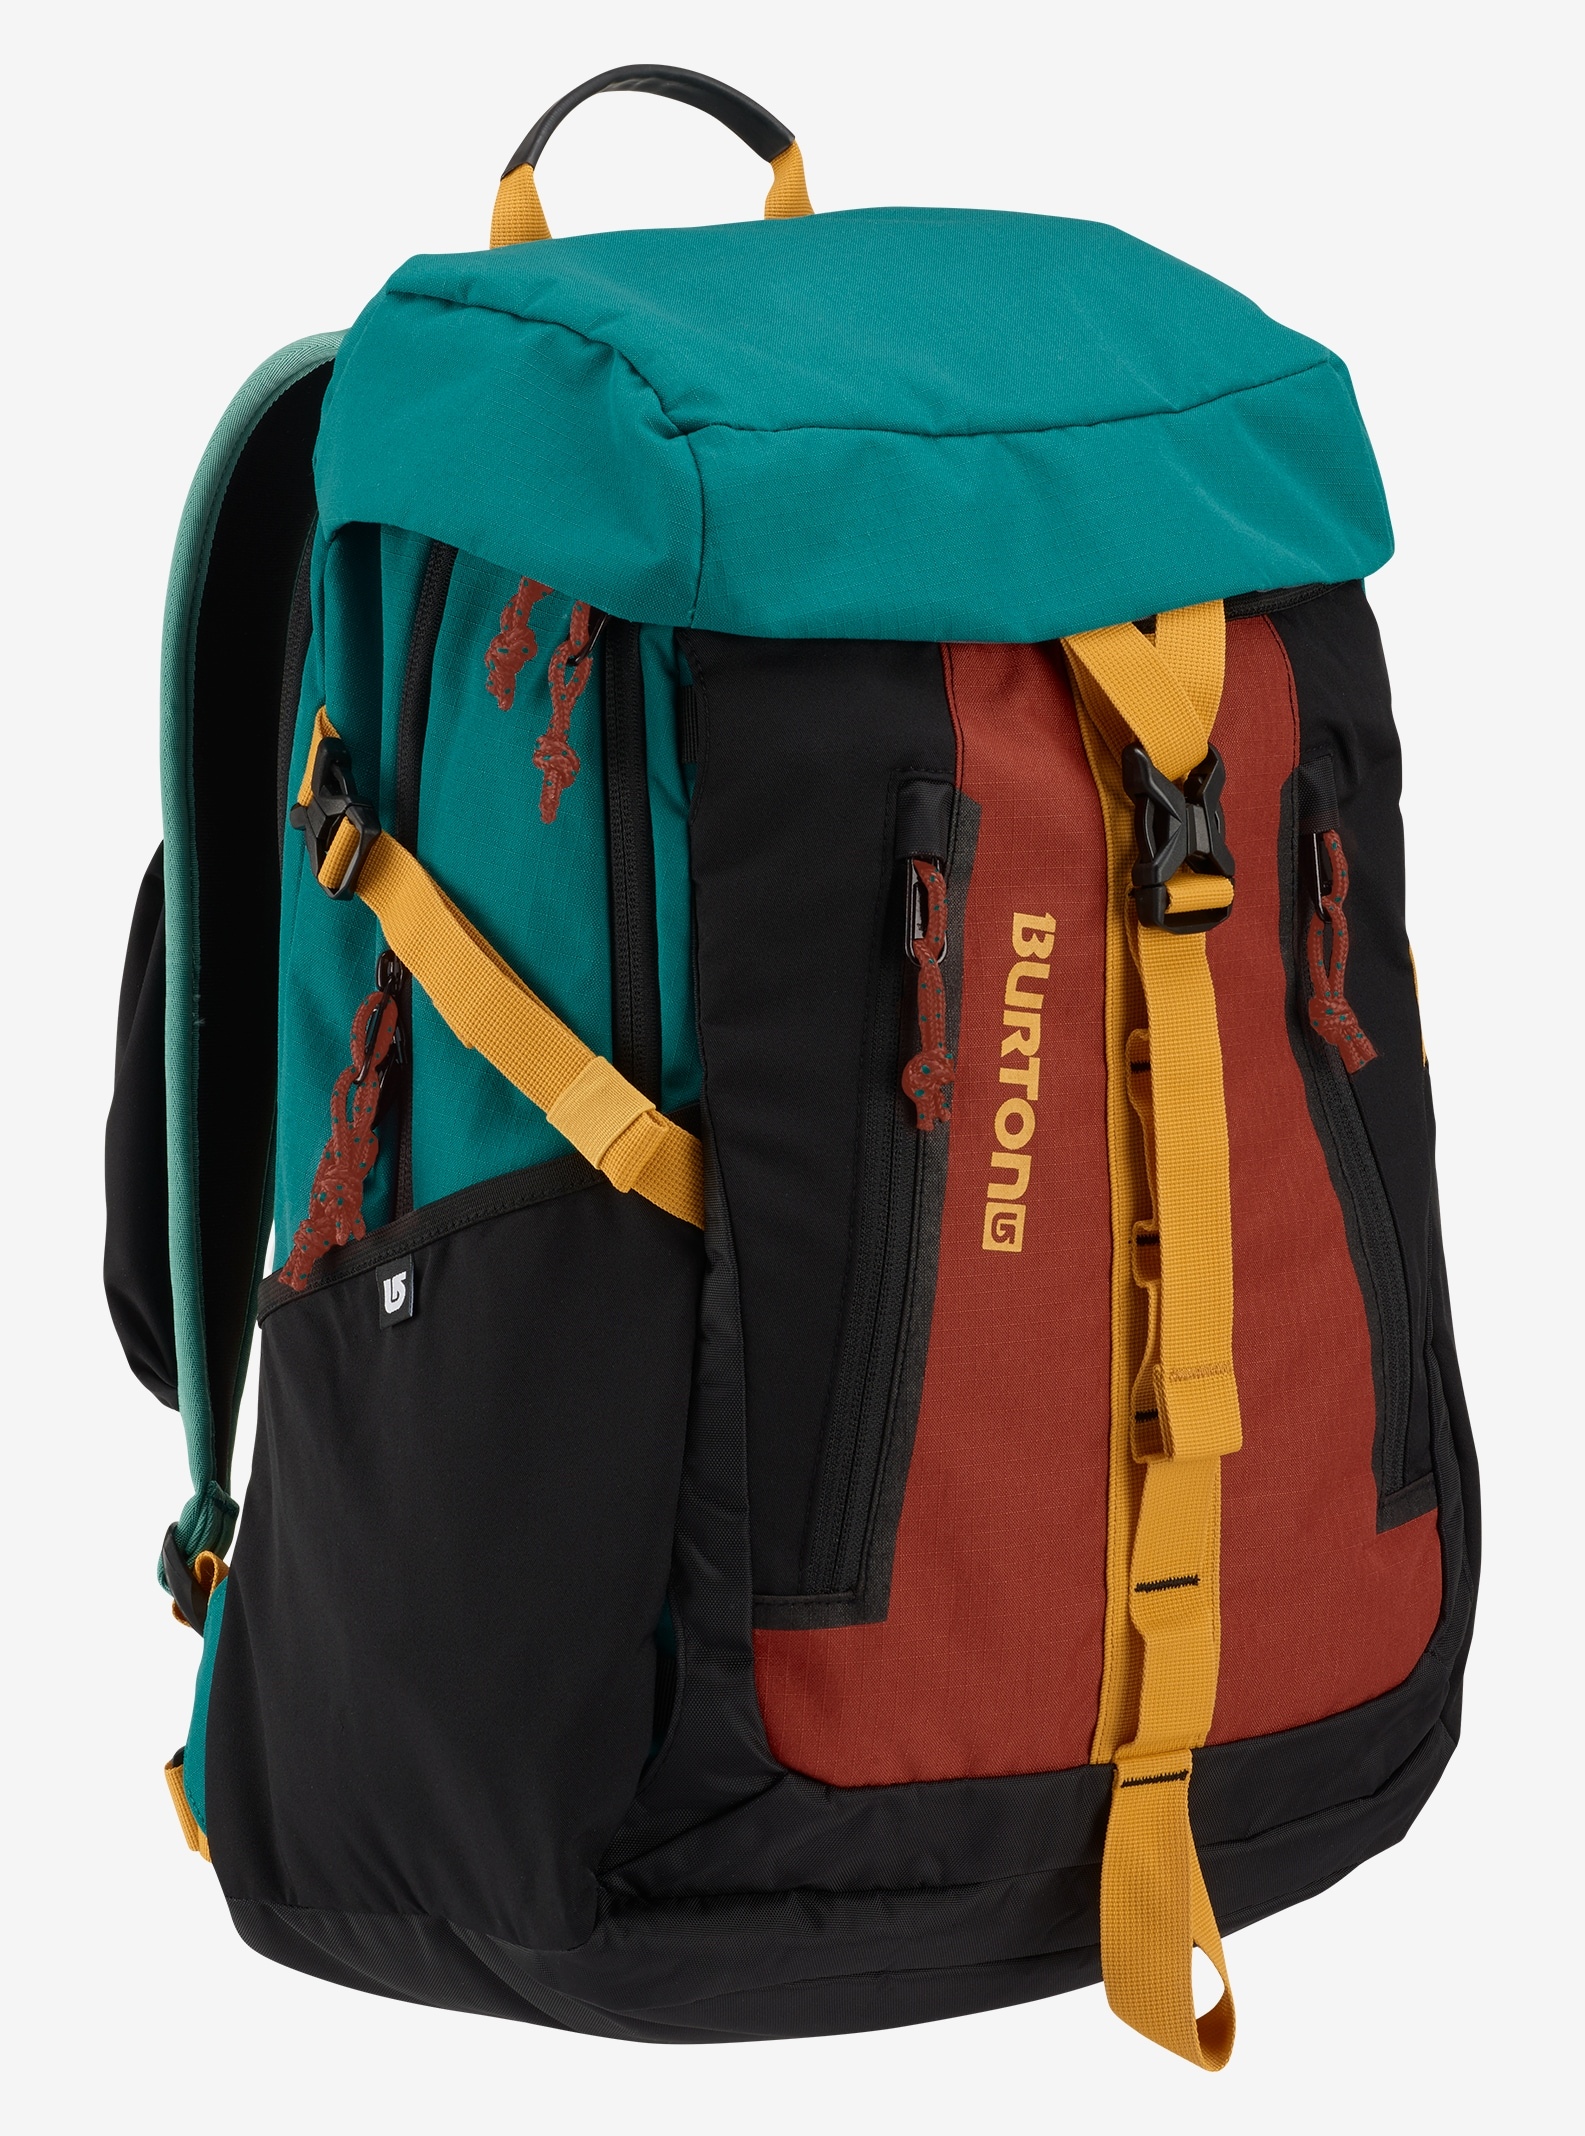 Burton Day Hiker Pinnacle 31L Backpack shown in Tandori Ripstop